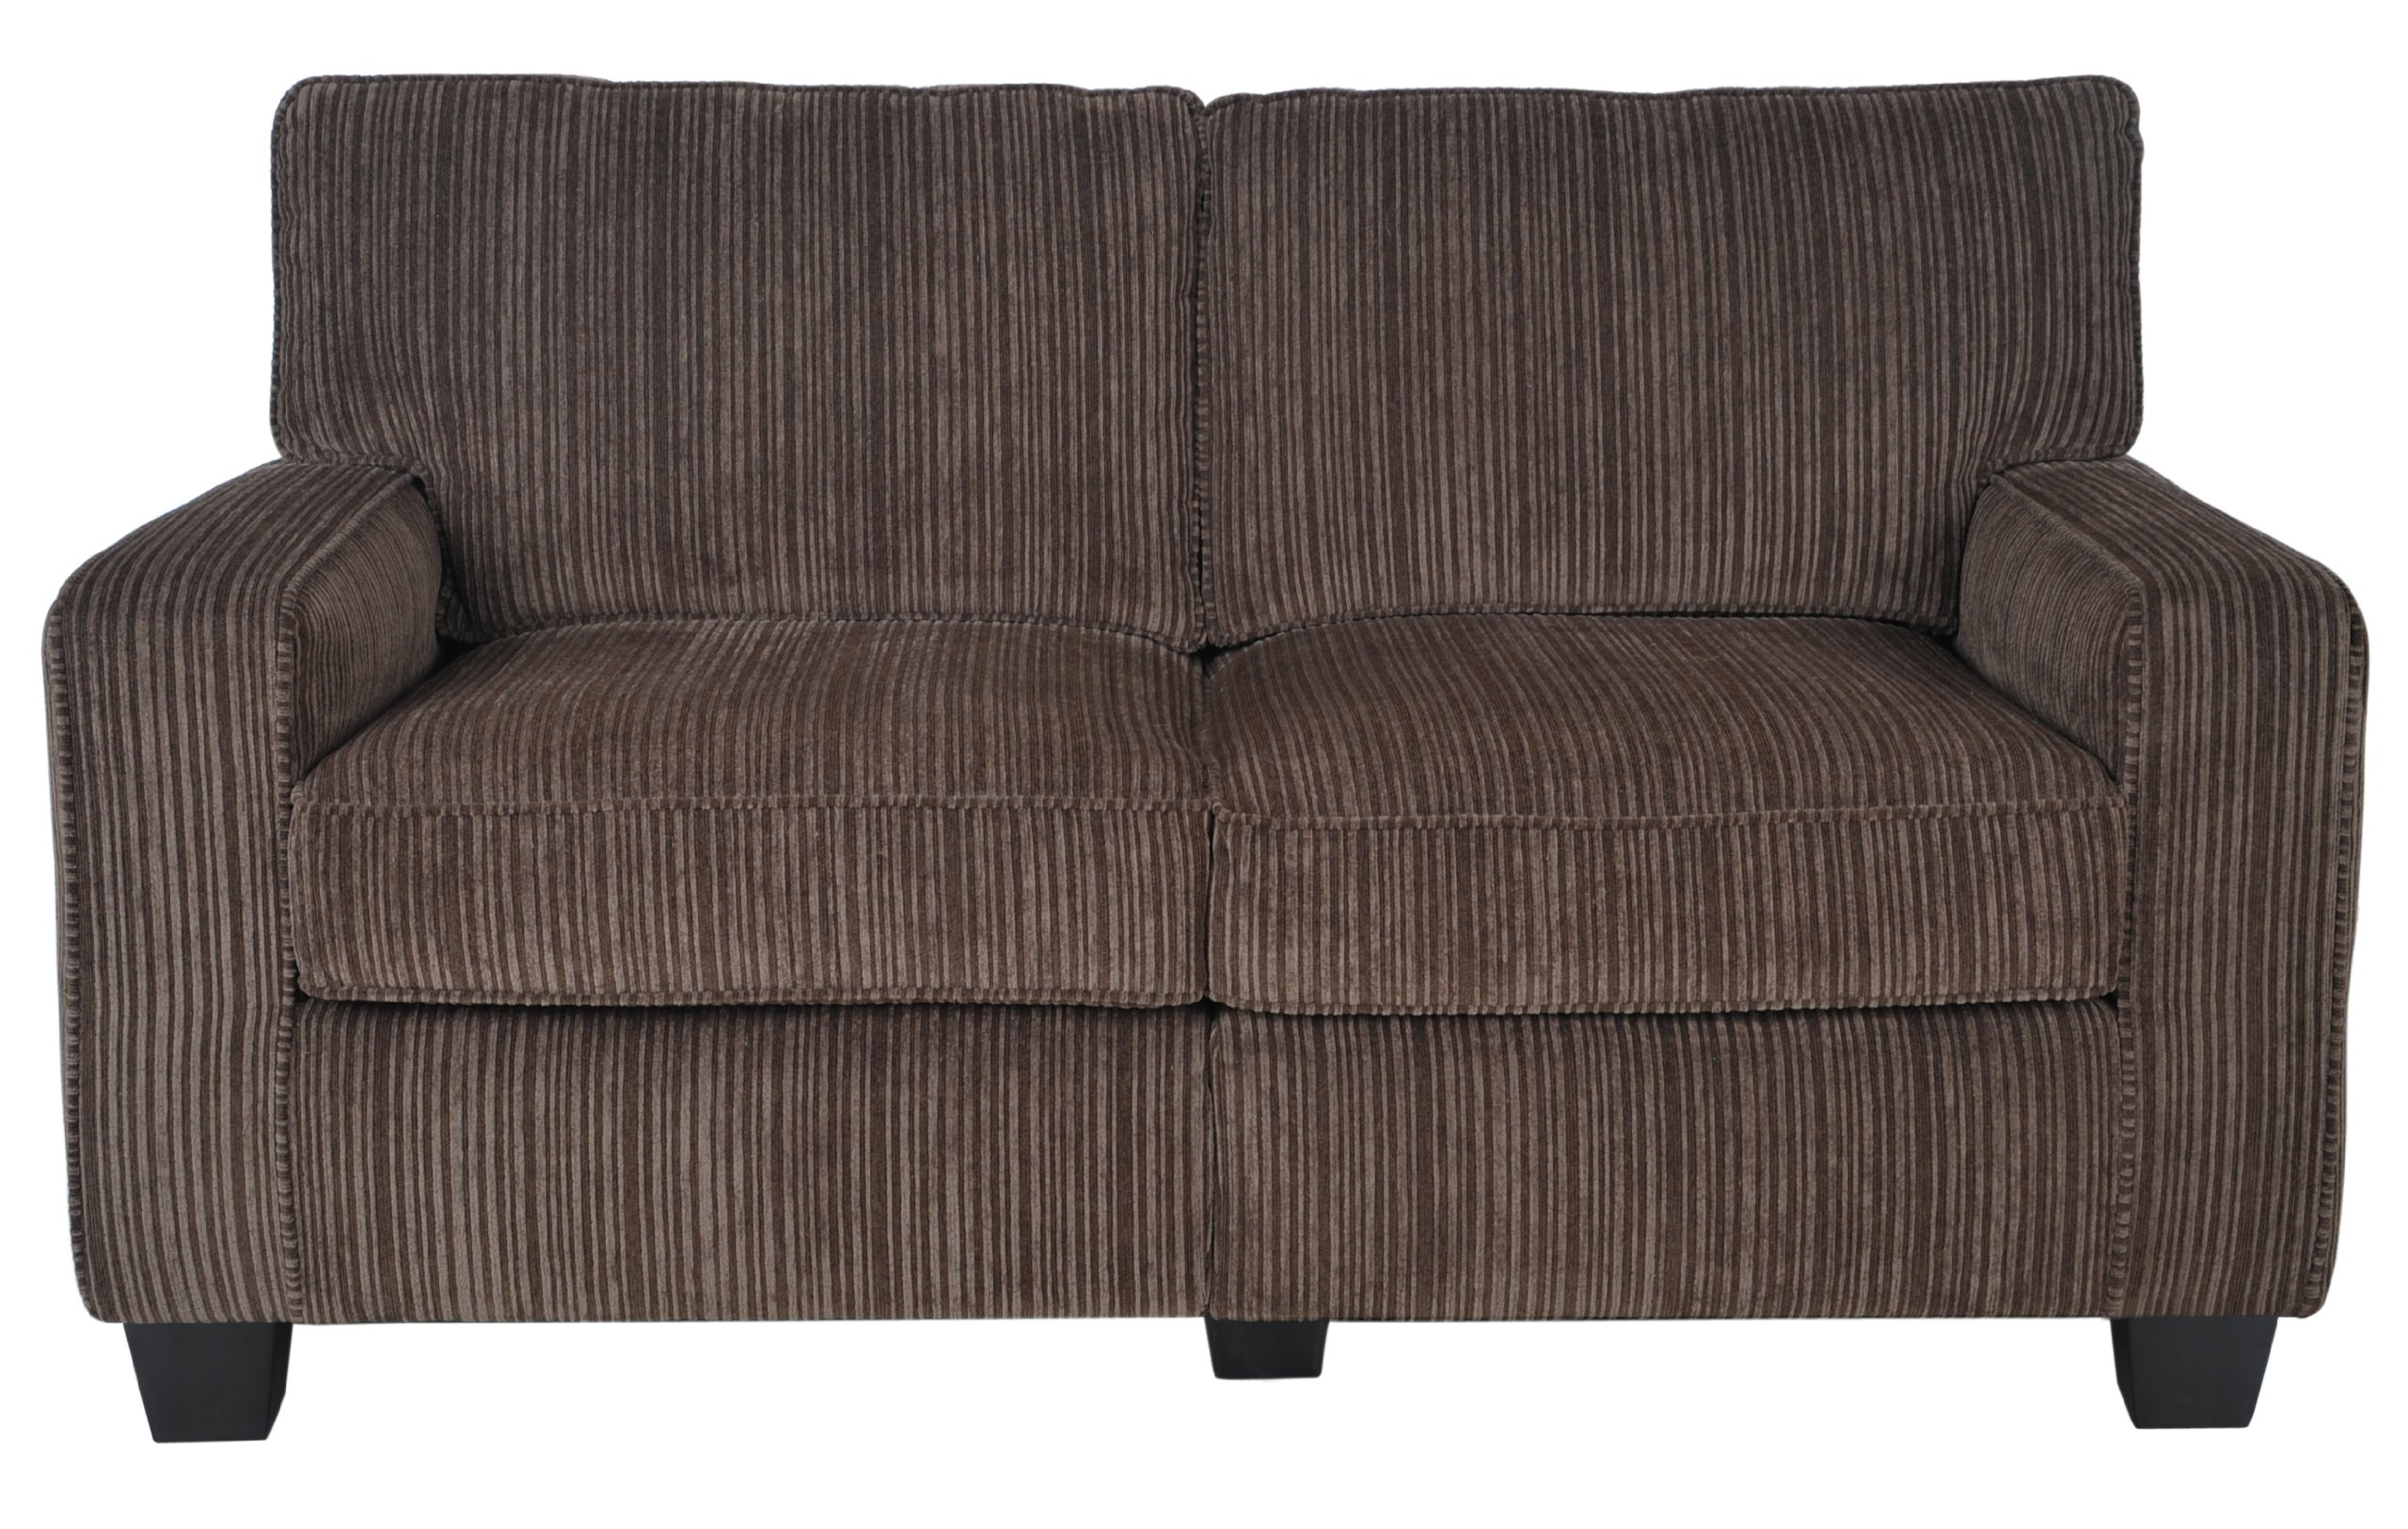 Serta RTA Palisades Collection 61'' Loveseat in Riverfront Brown by Serta (Image #4)